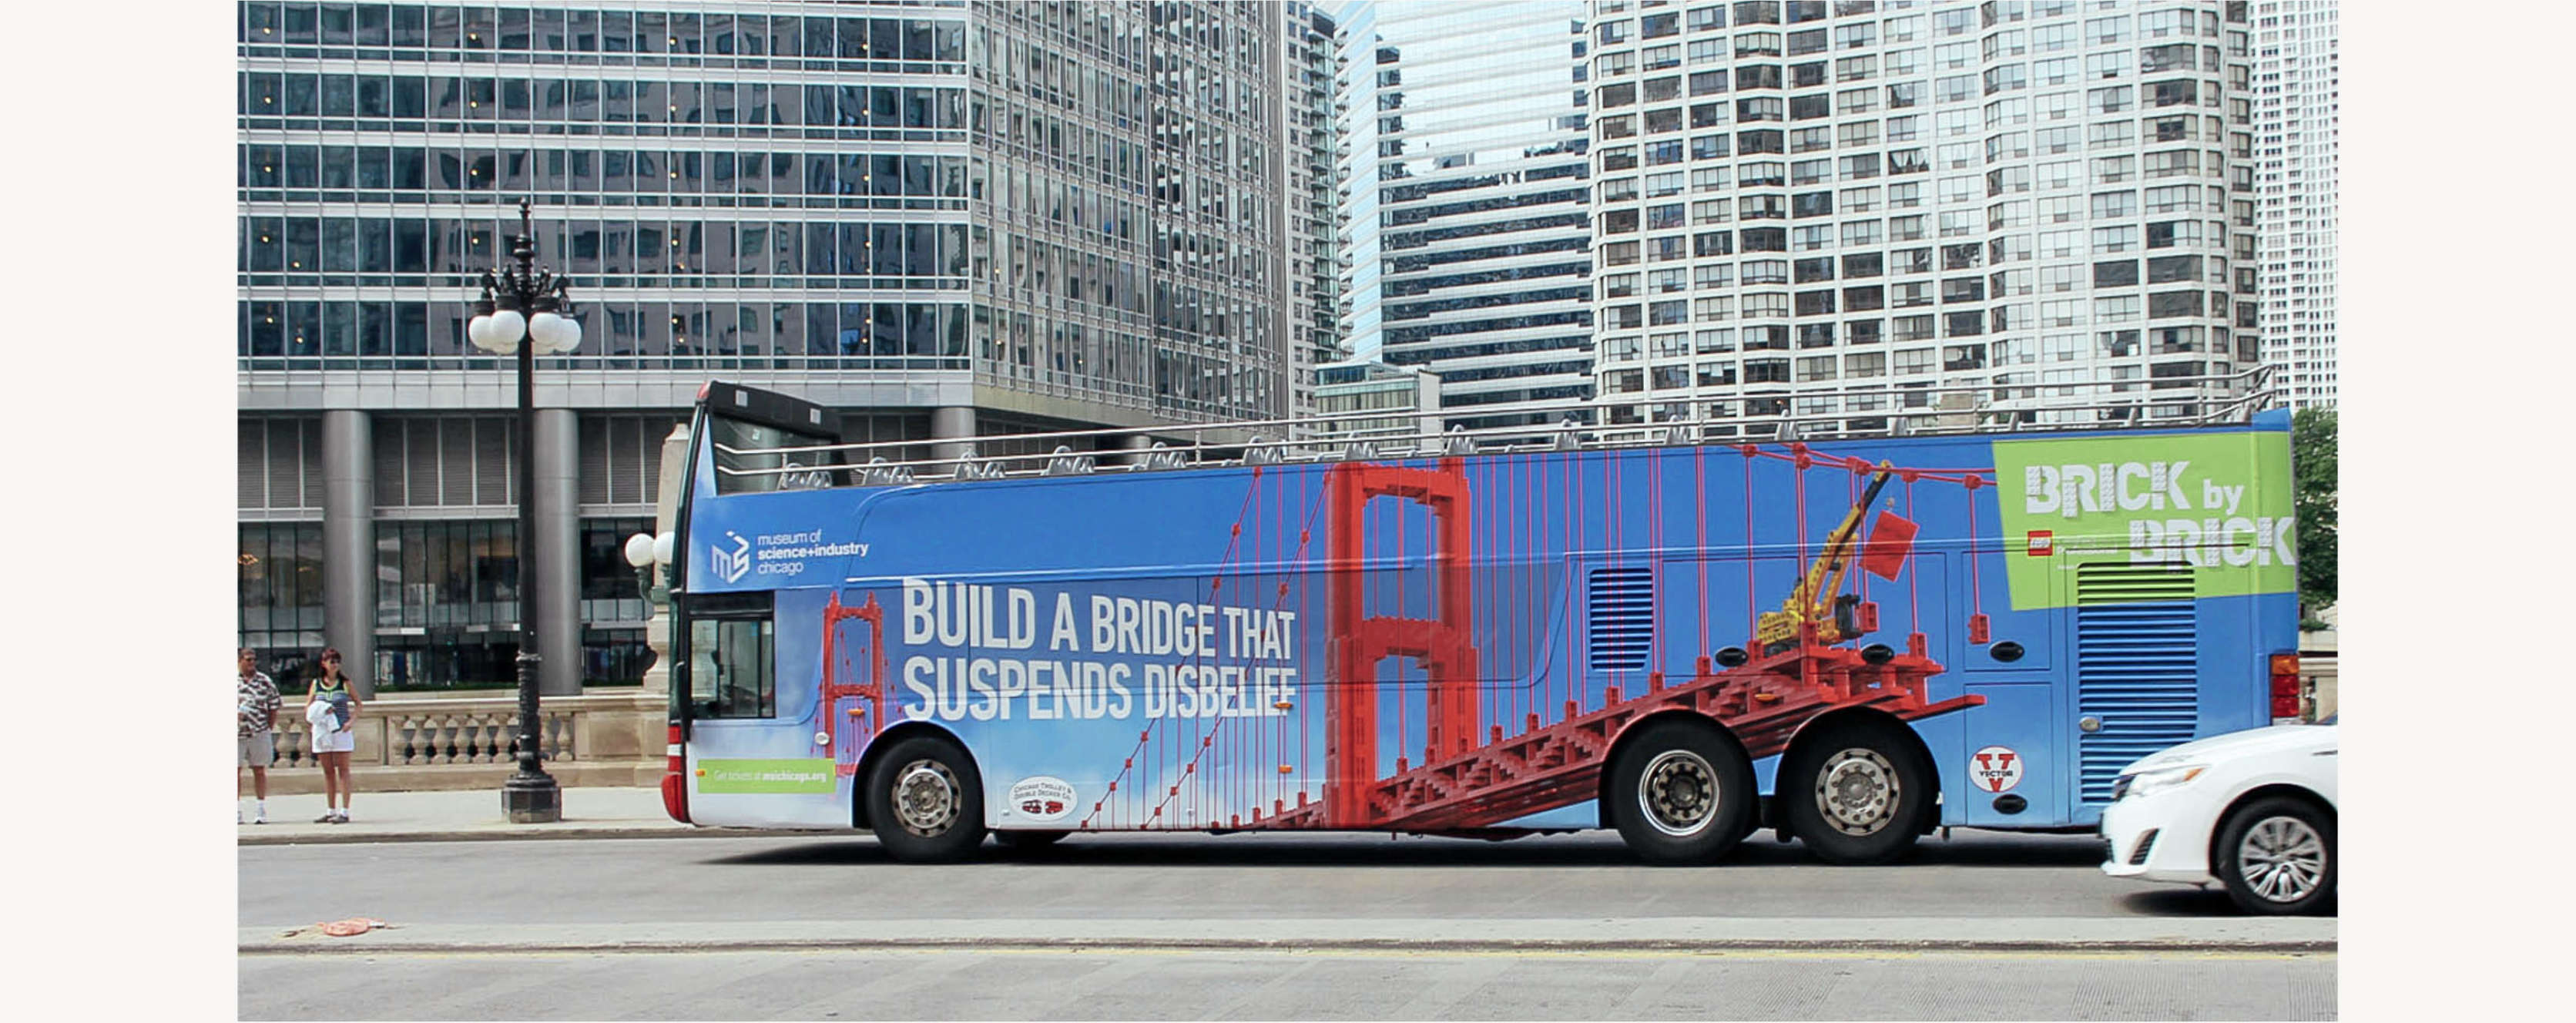 Out of home bus wrap ad featuring LEGO Golden Gate bridge.